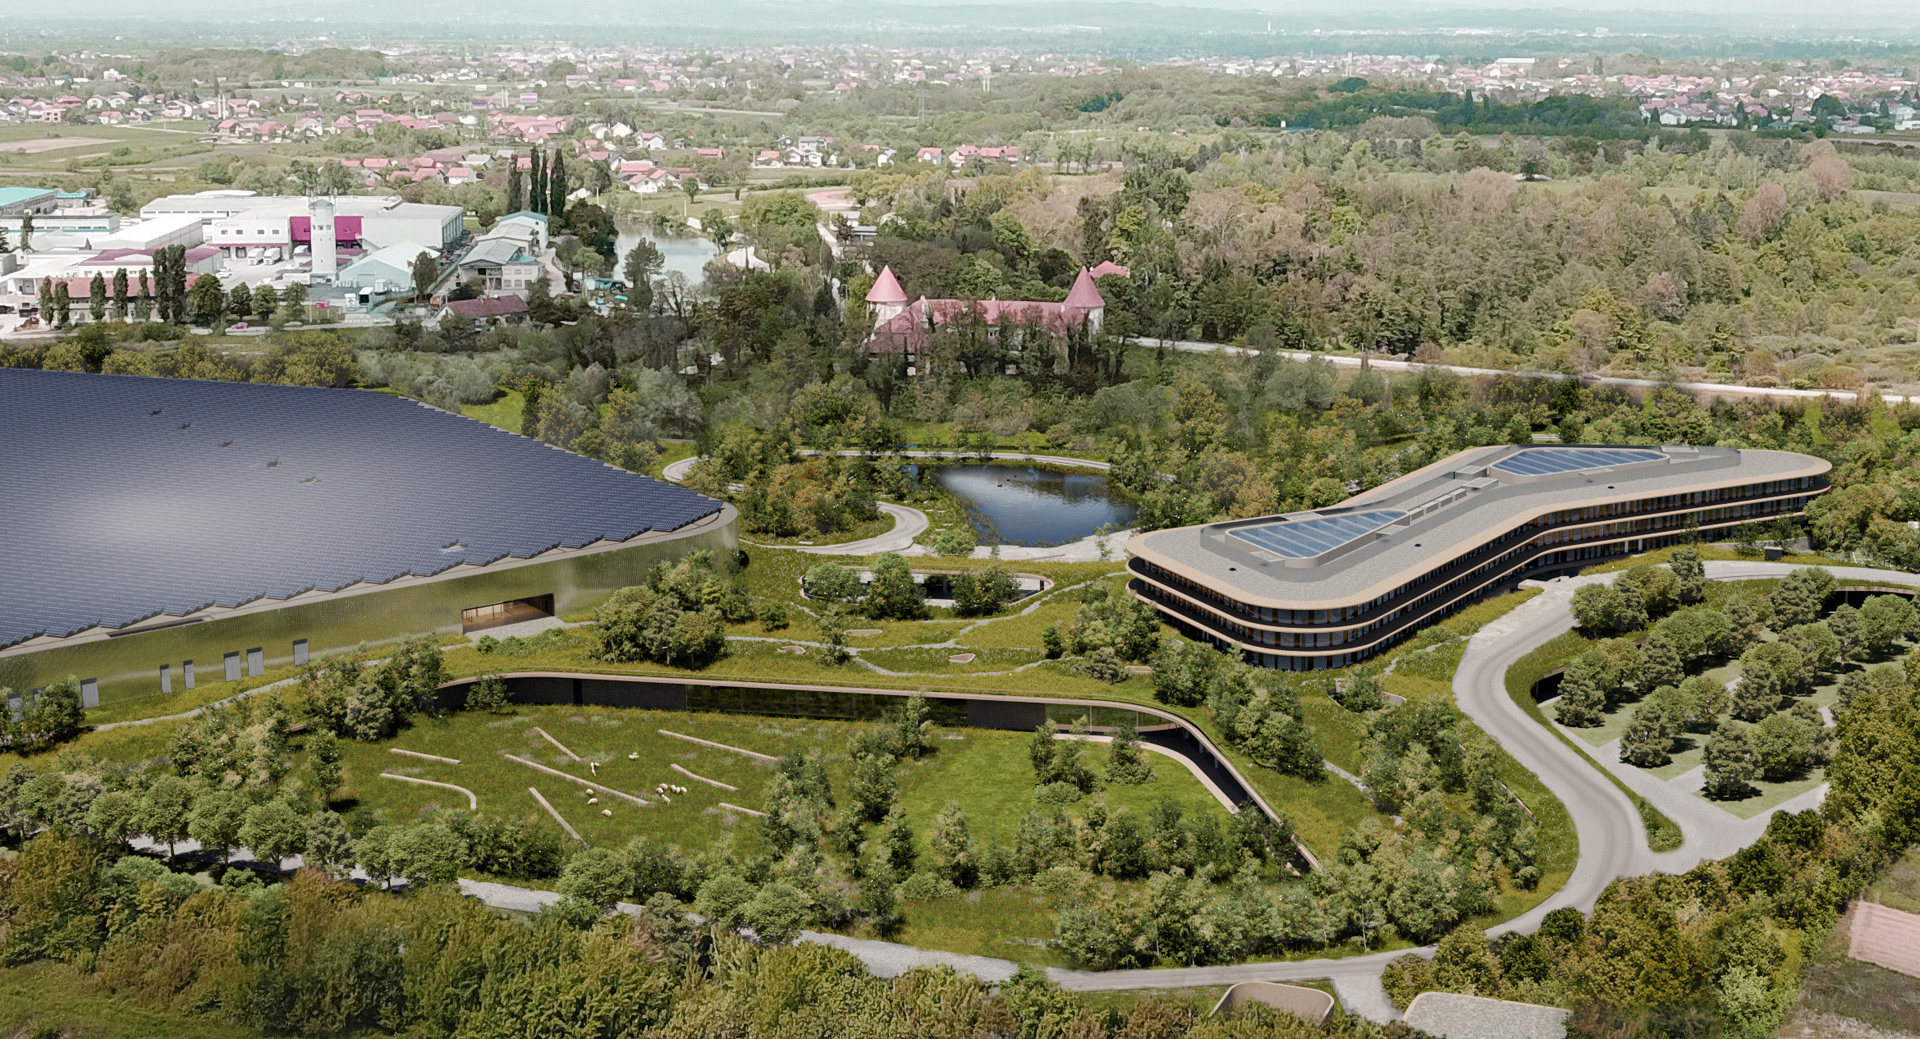 artists-impression-of-rimacs-new-headquarters-to-built-in-zagreb-croatia_100788617_h